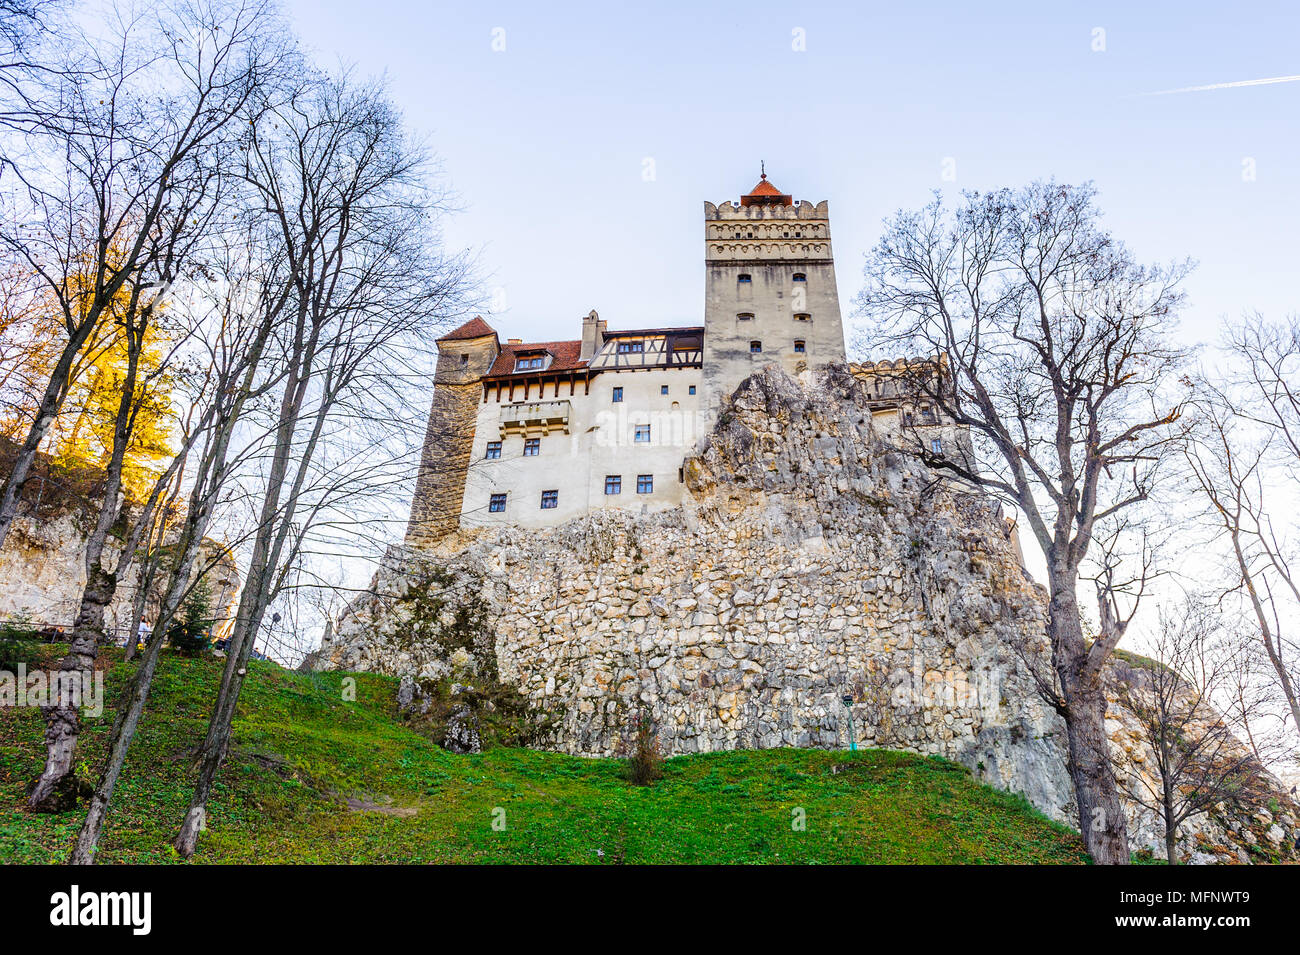 Bran Castle (Dracula Castle) on the top of the rock, Transylvania, Bran, Romania Stock Photo